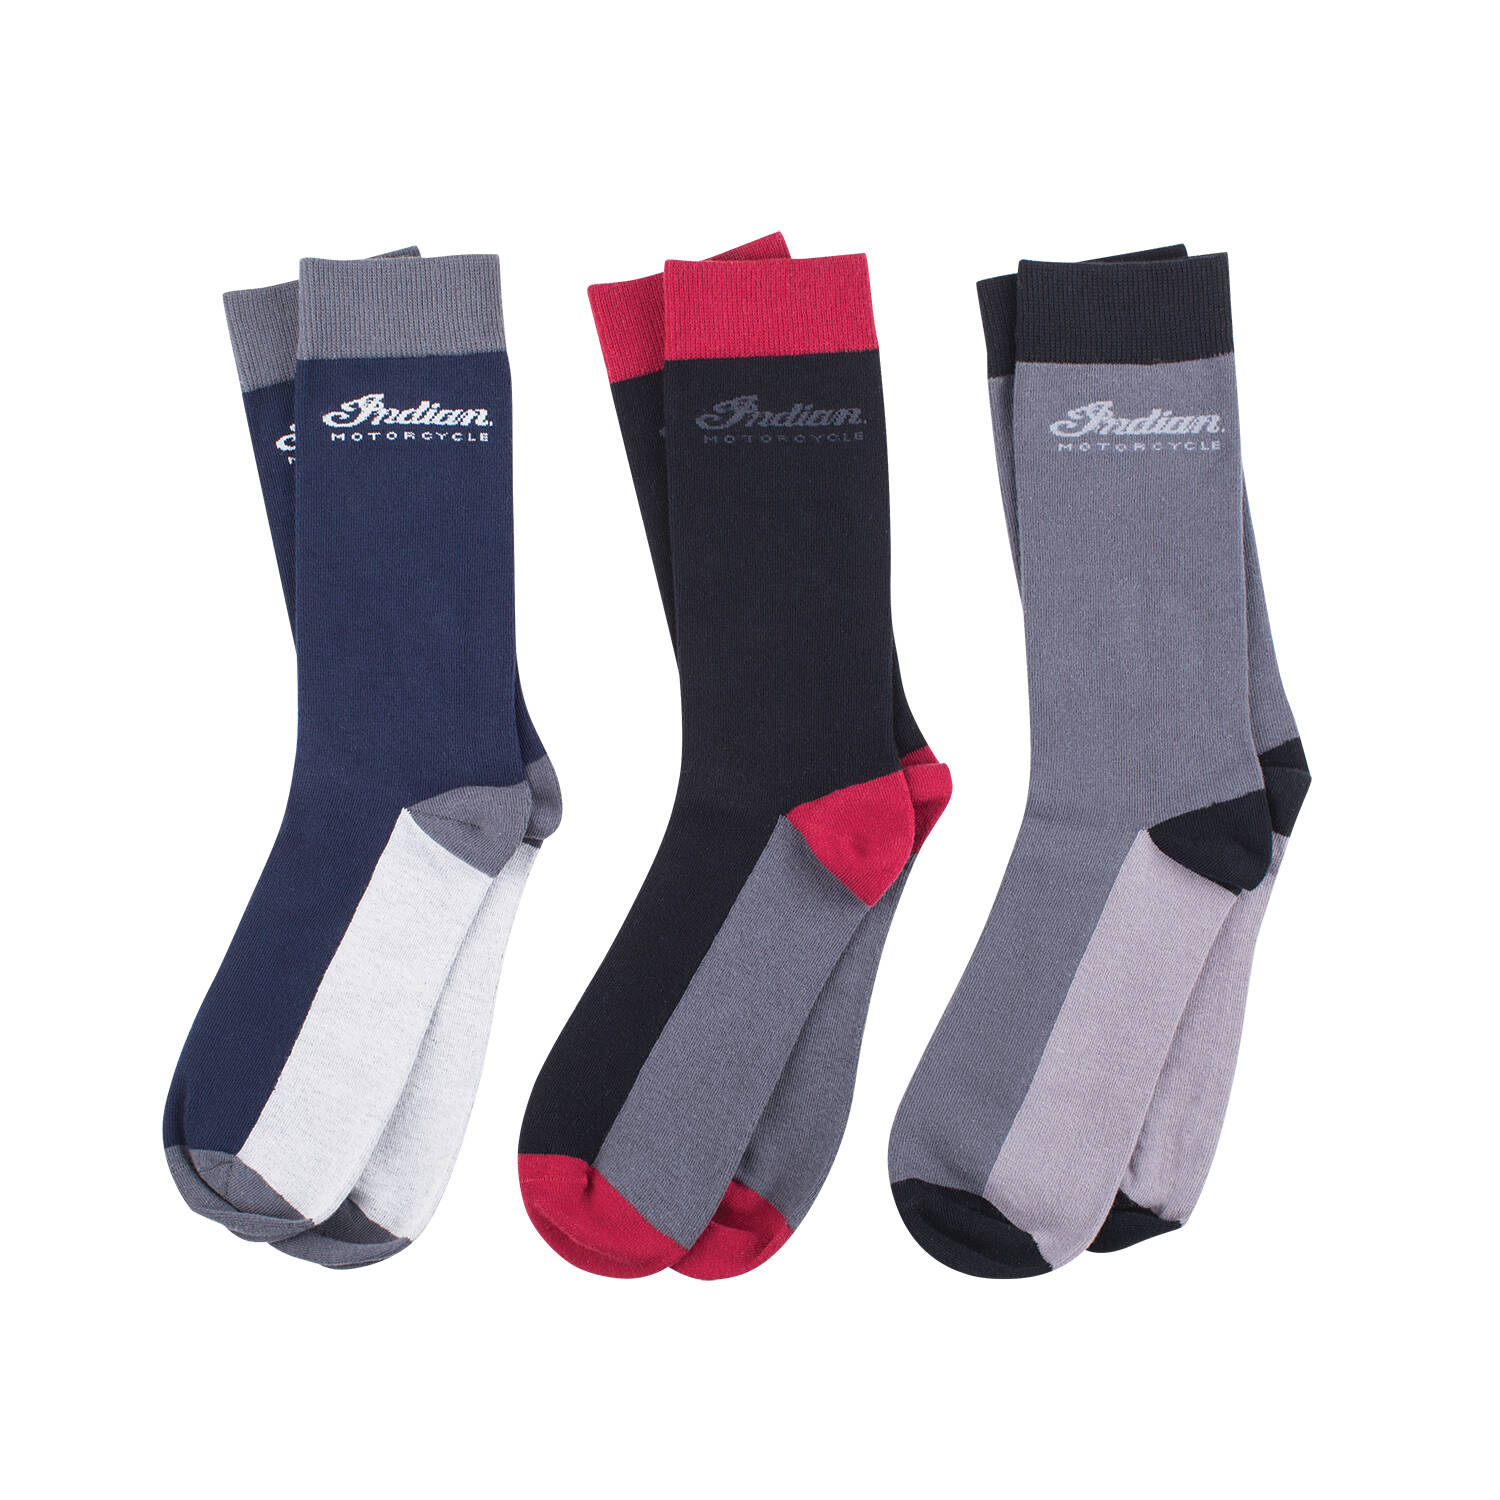 Men's Mid-Calf Socks, 3 Pack, Black/Gray/Navy